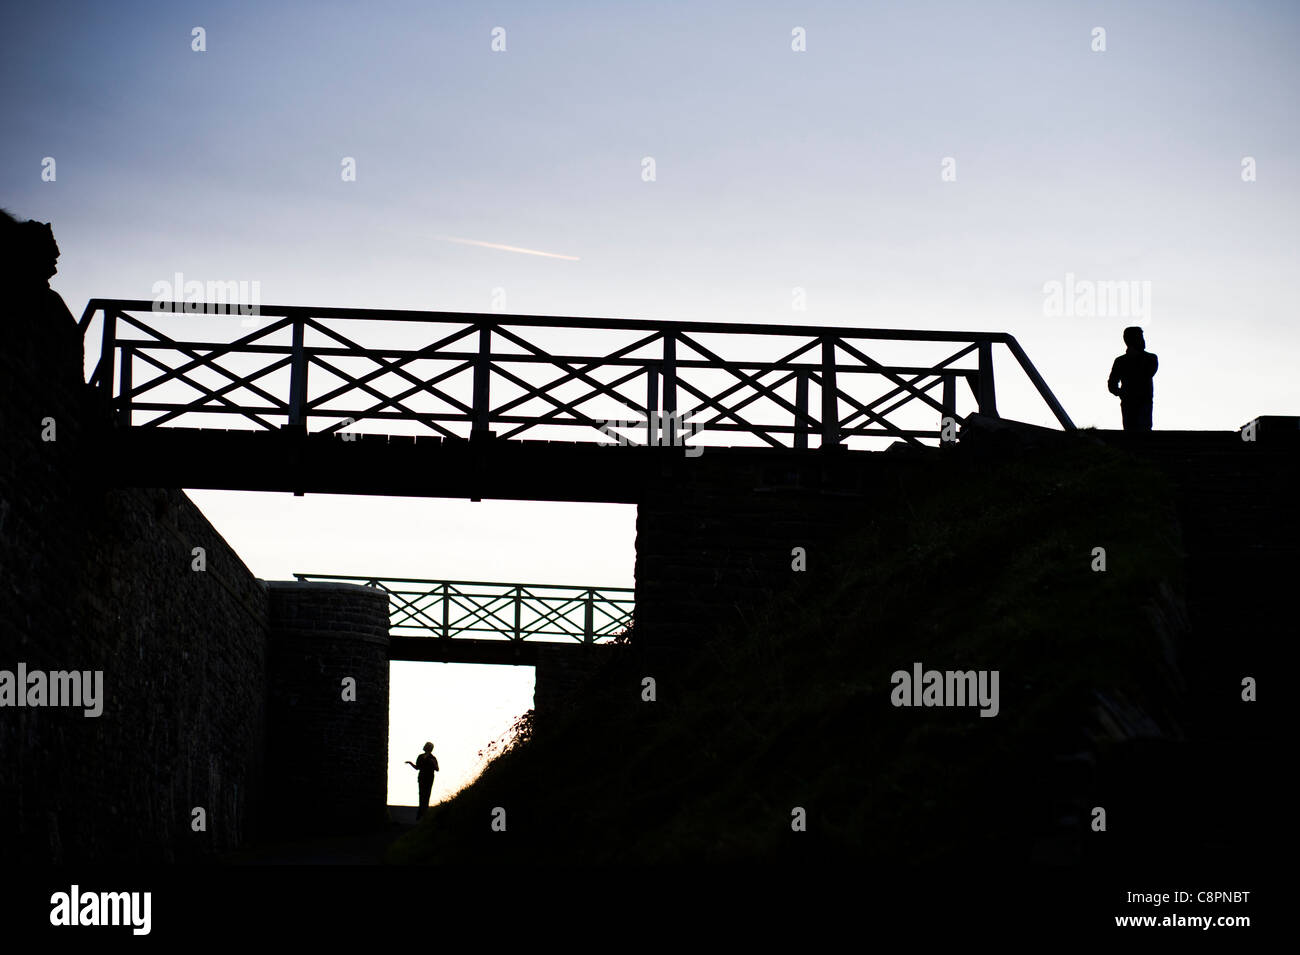 Two separate people standing, and footbridges, silhouetted at dusk, UK - Stock Image